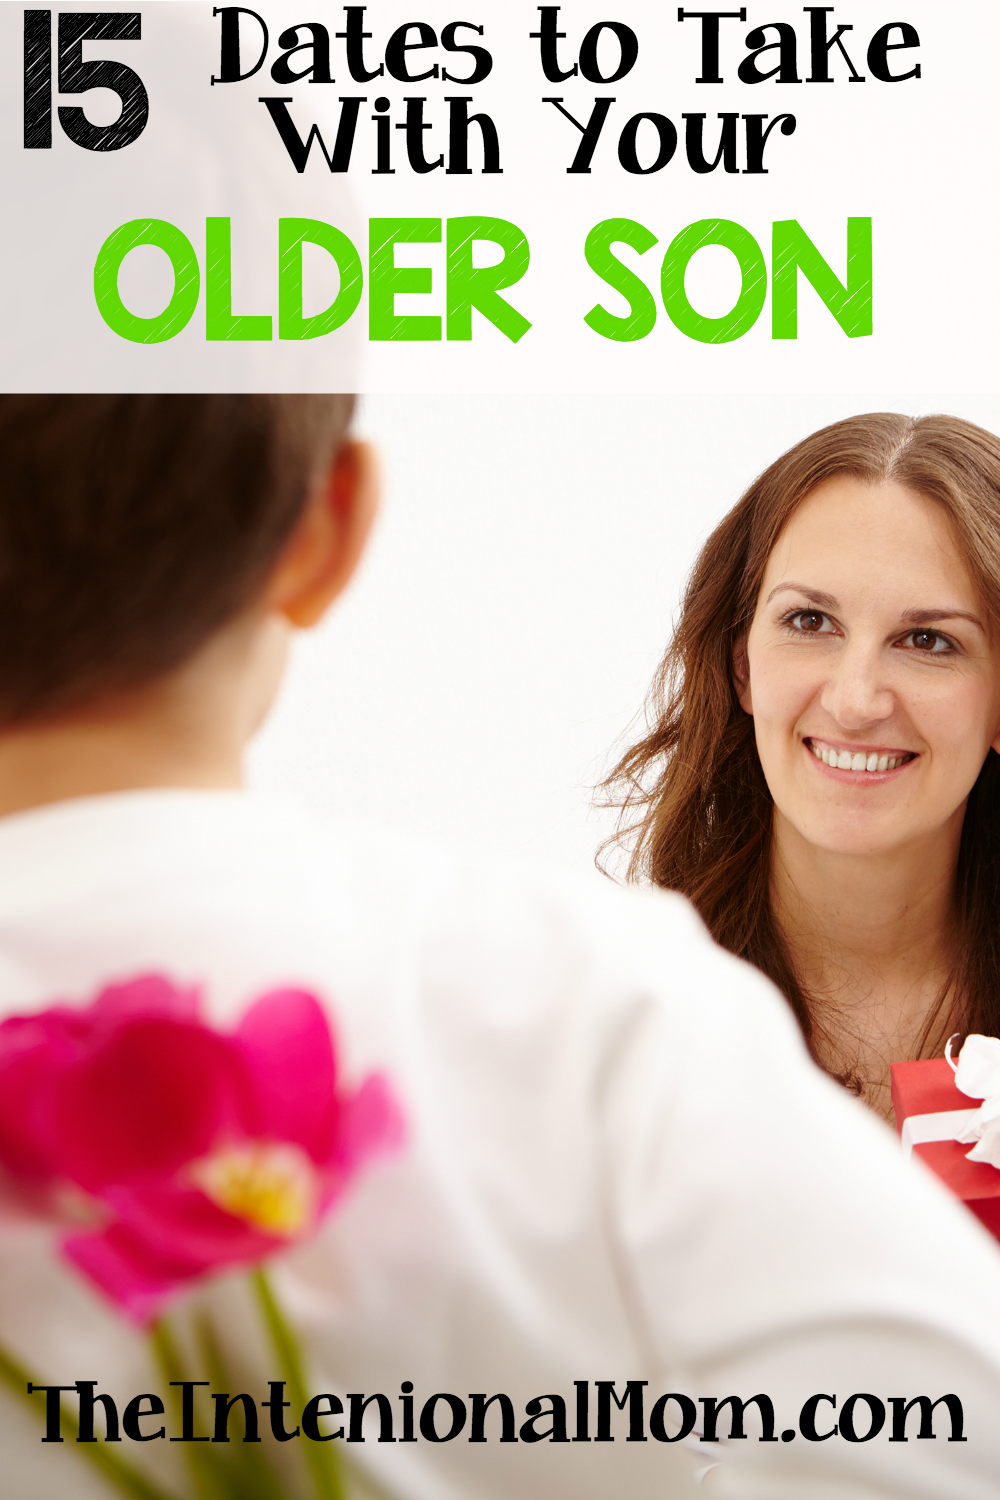 15 dates to take with your older son